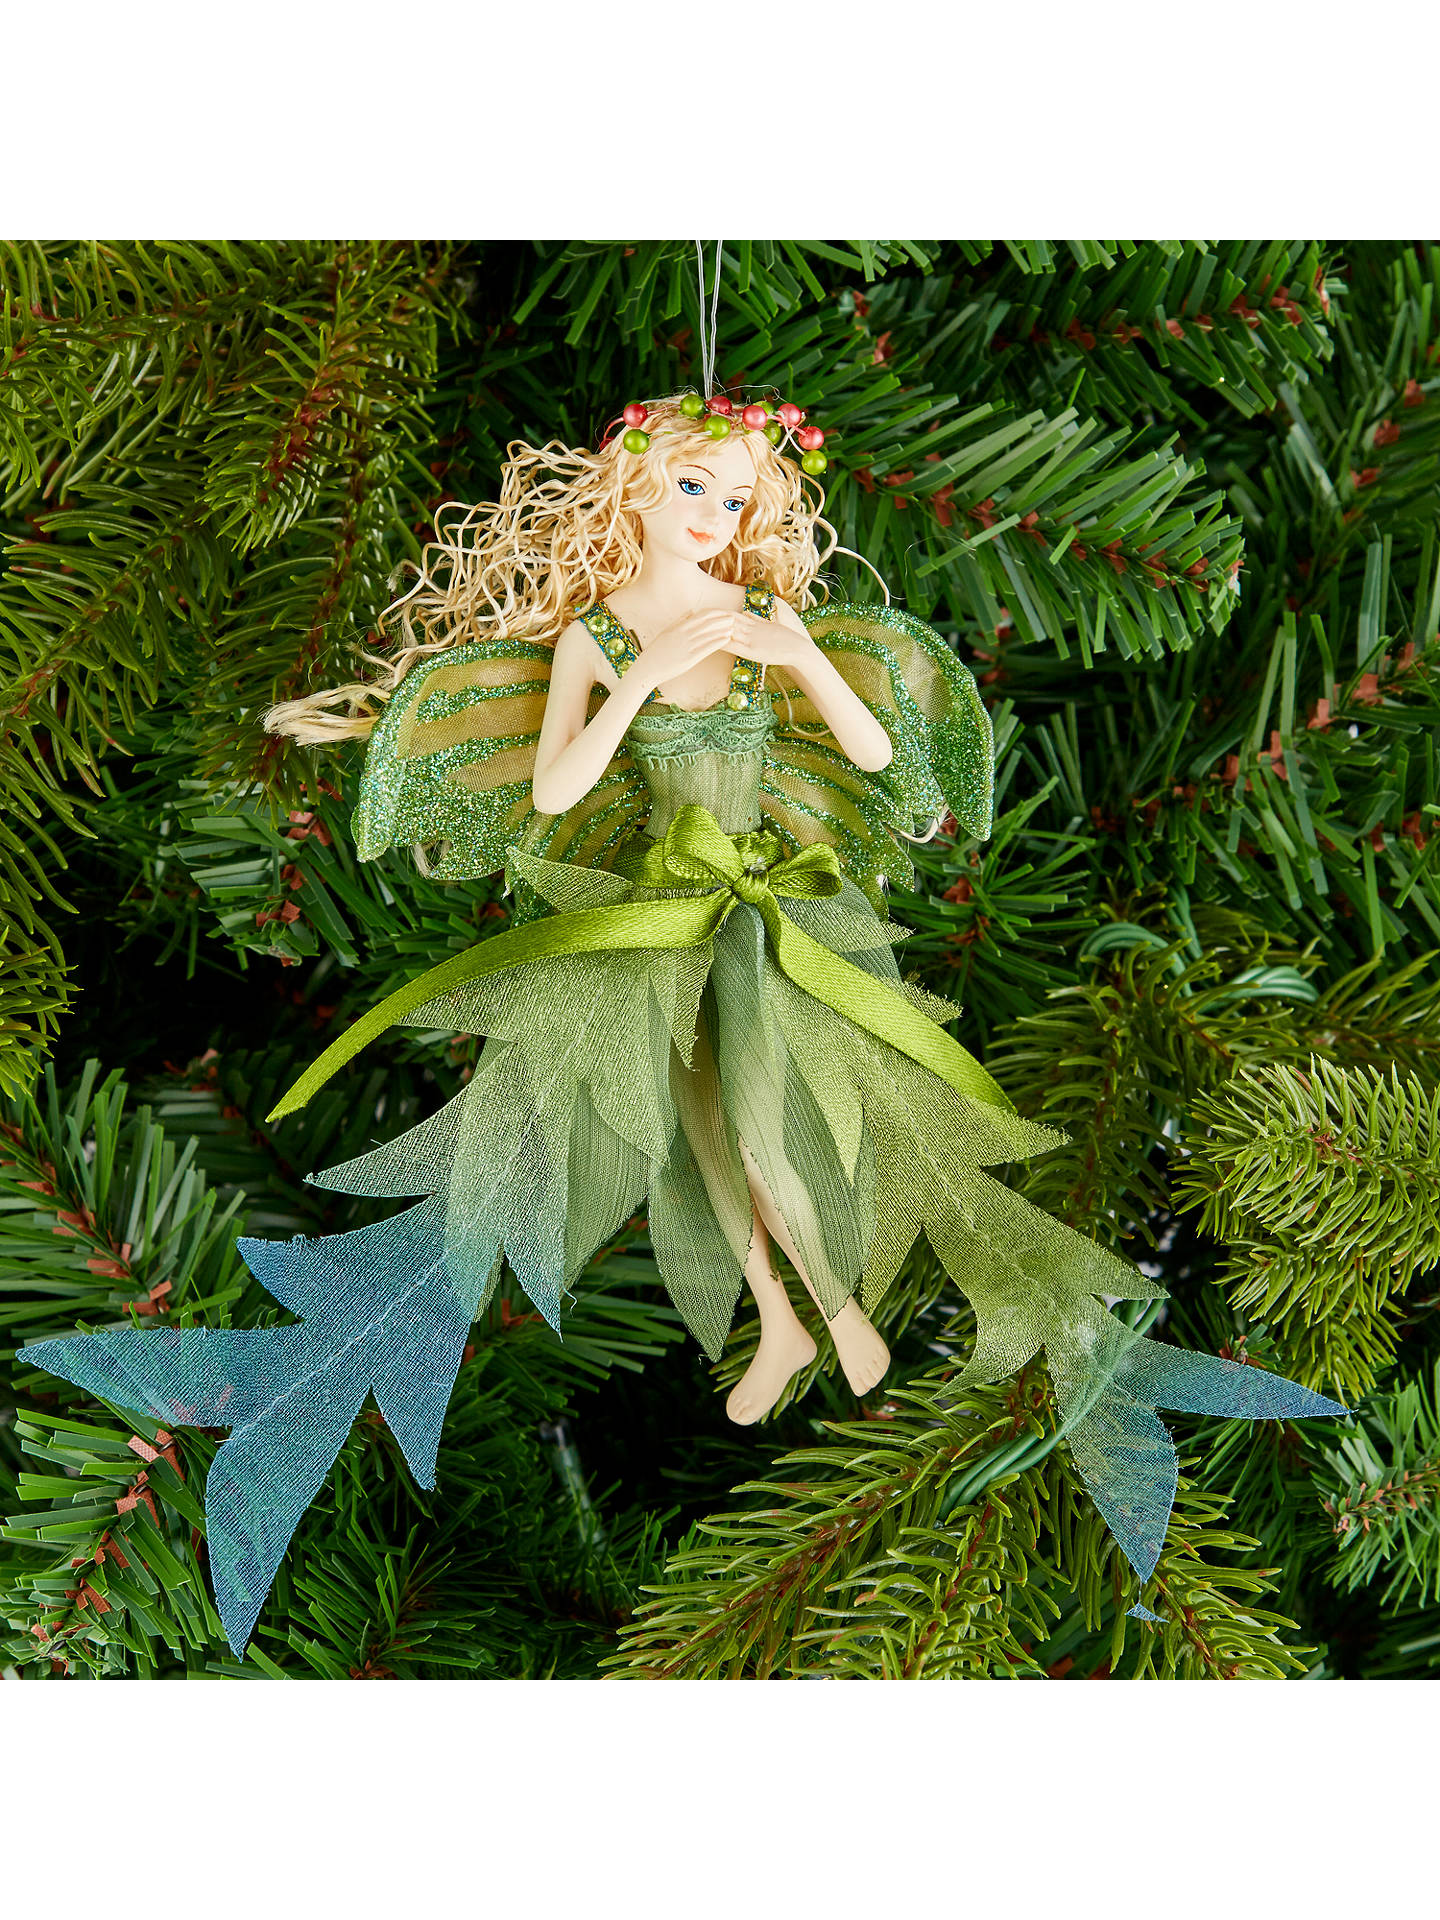 John Lewis Christmas Tree Themes.John Lewis Into The Woods Woodland Fairy Tree Decoration At